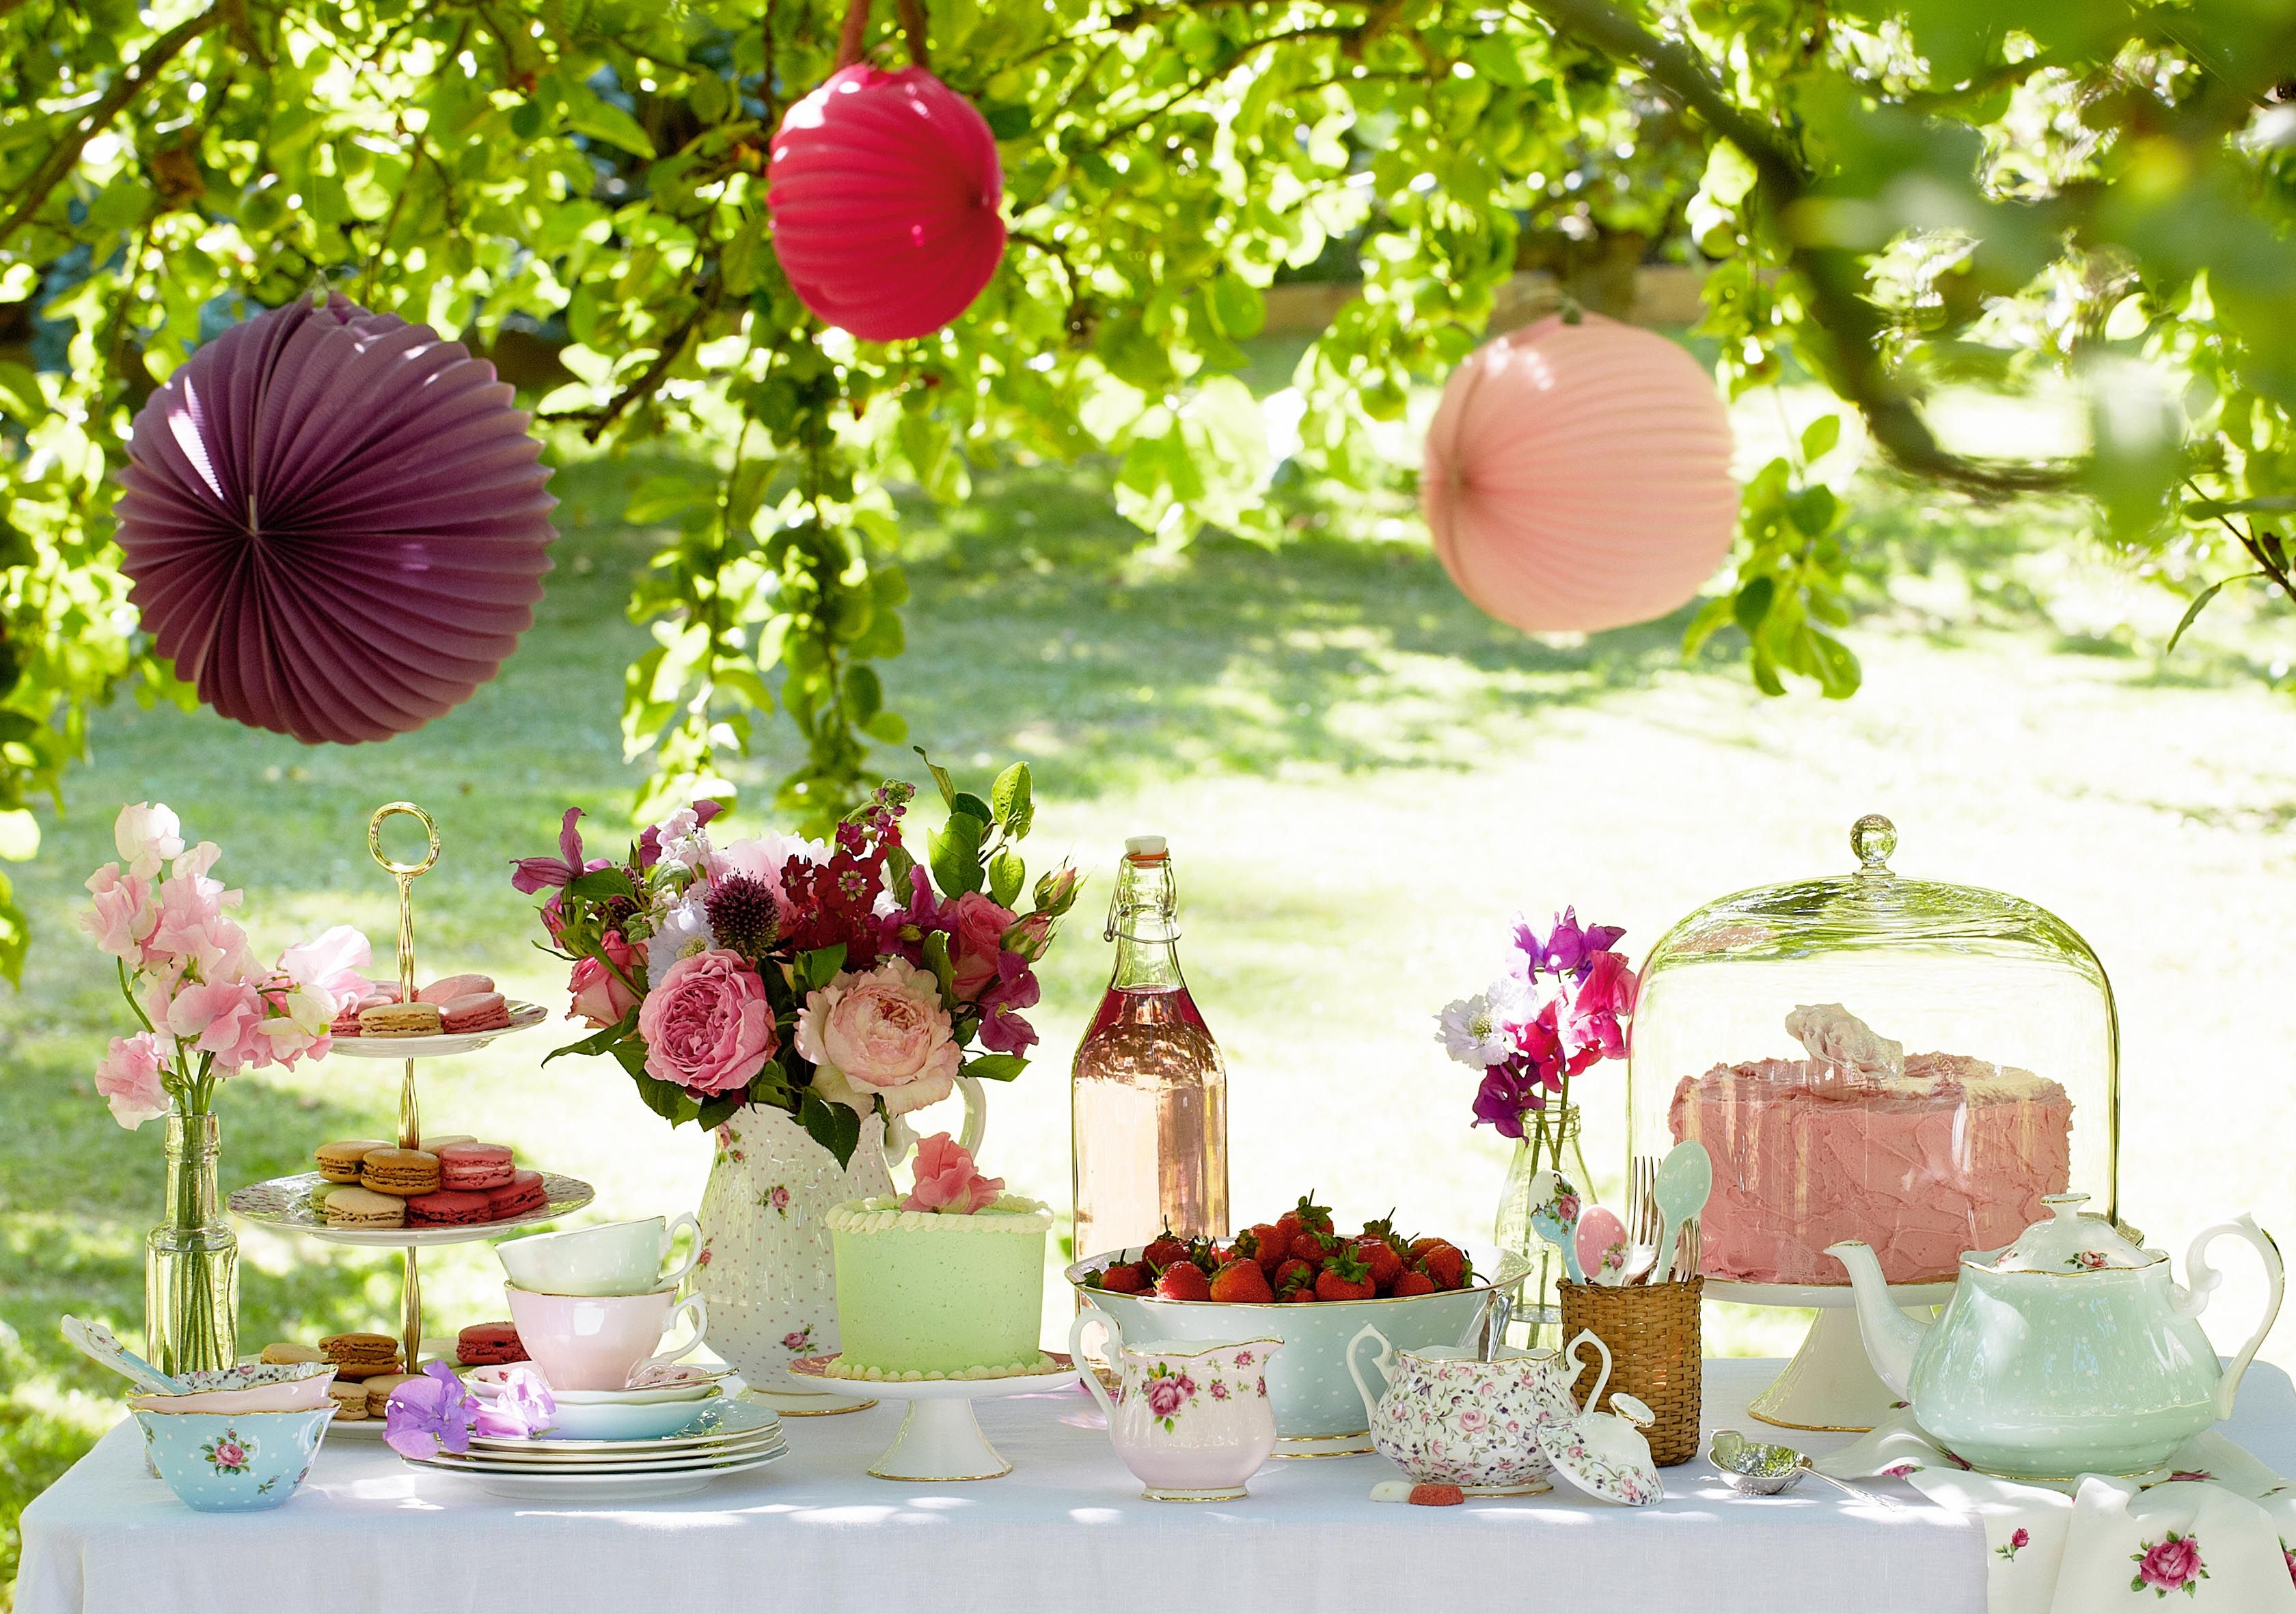 Take your teacups outside and enjoy a Royal Albert Summer Tea Party ...